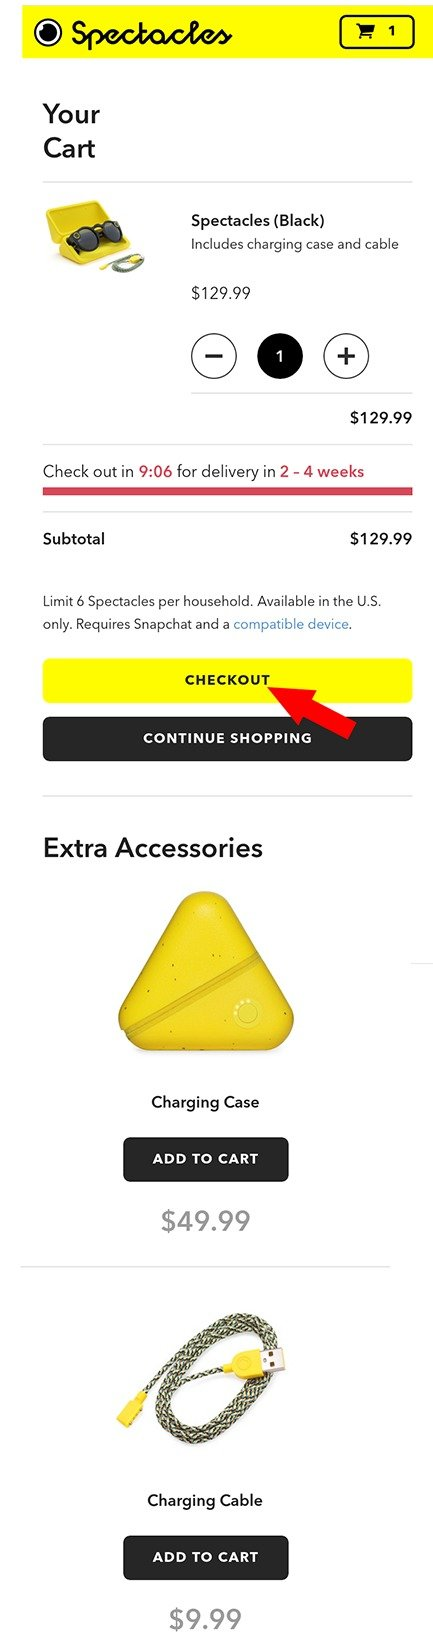 Order Snapchat Spectacle online